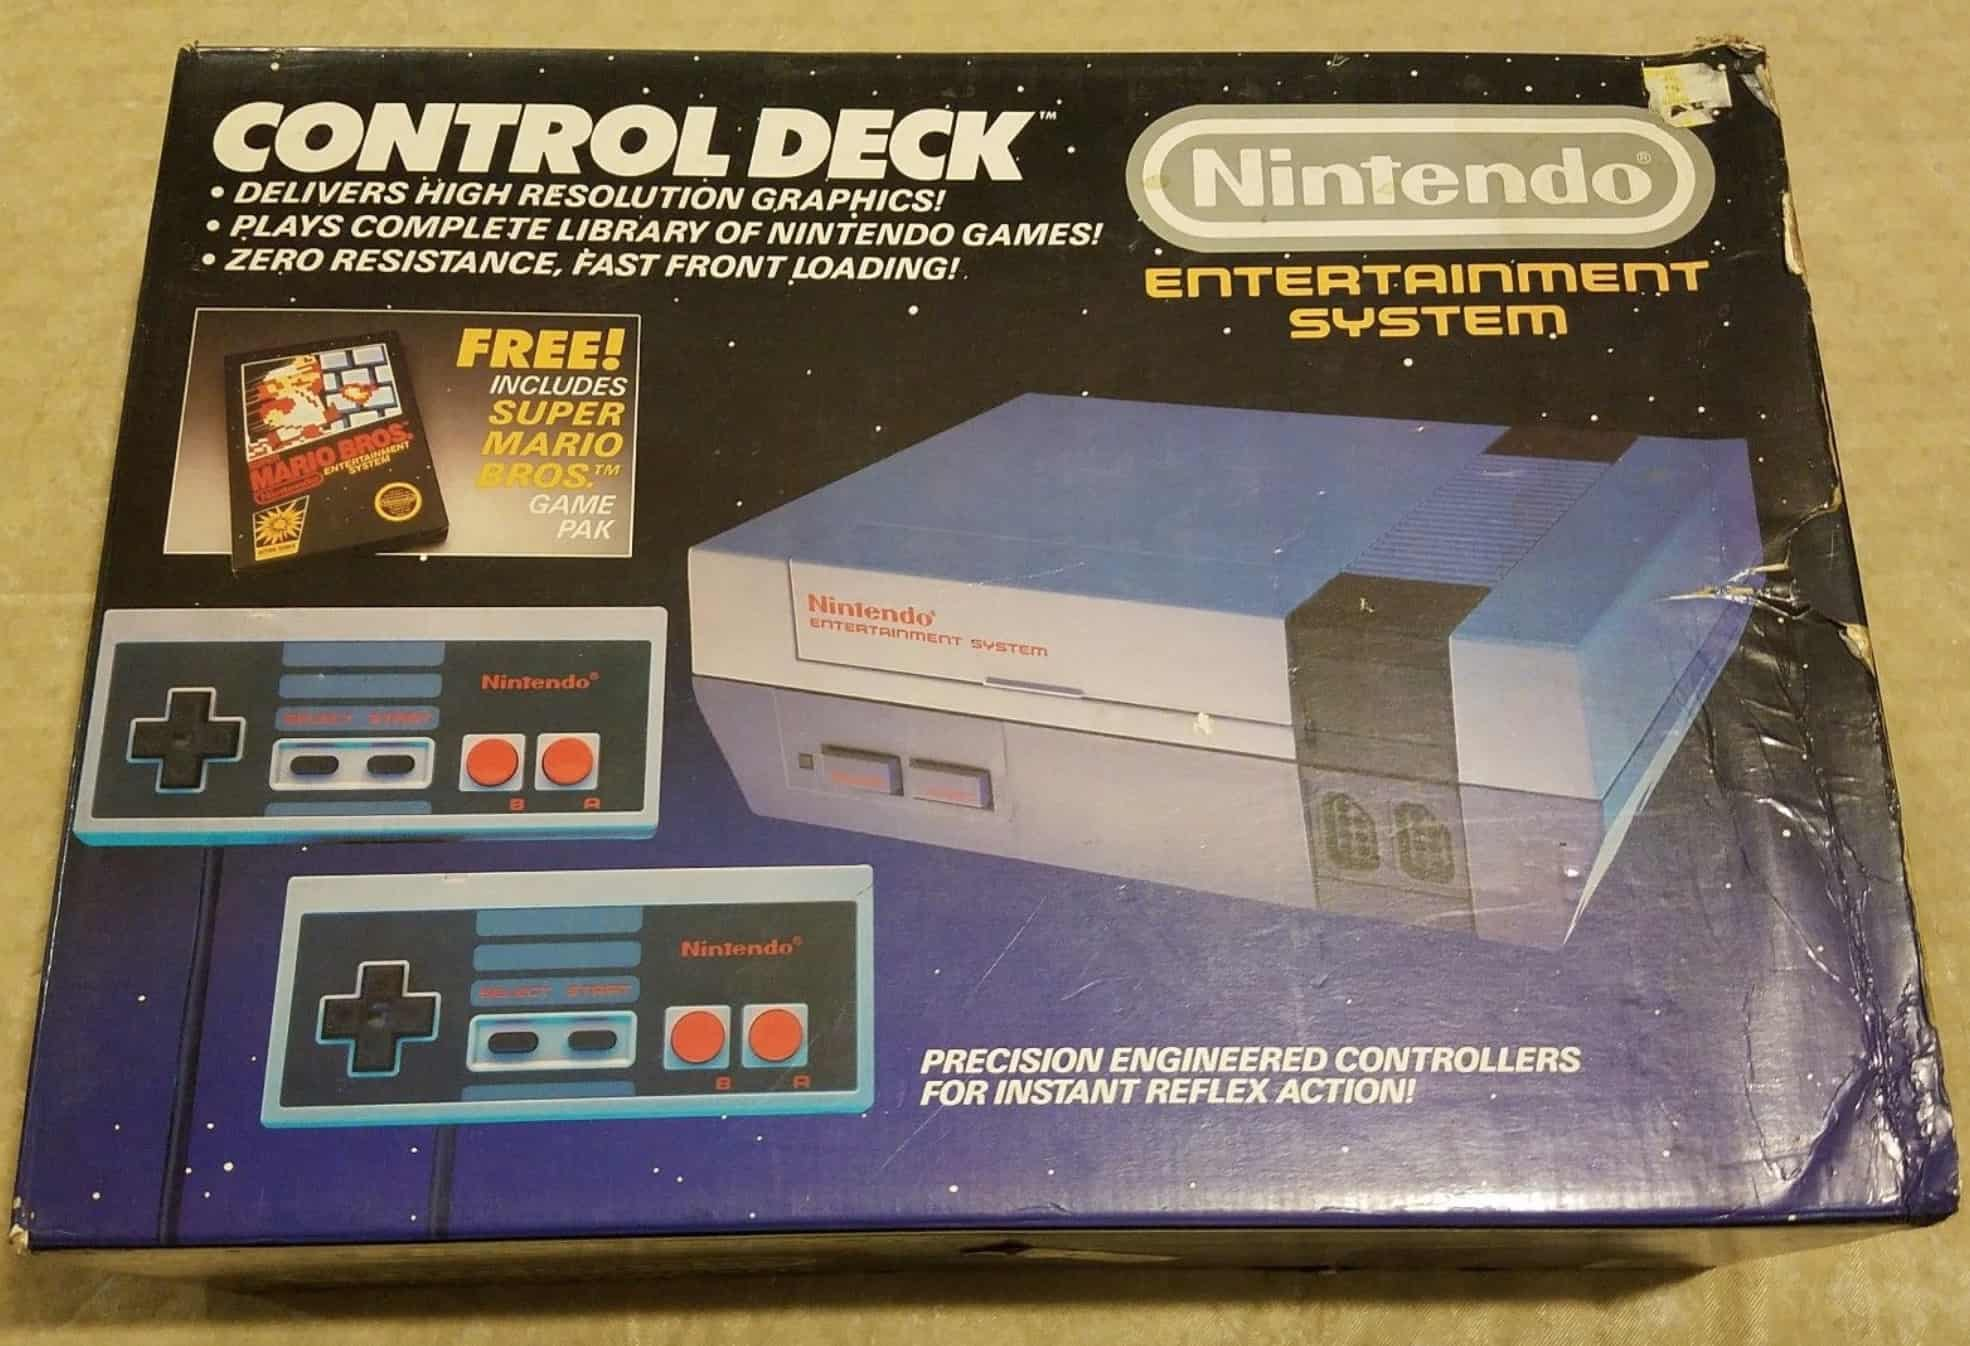 a picture of an original NES Control Deck